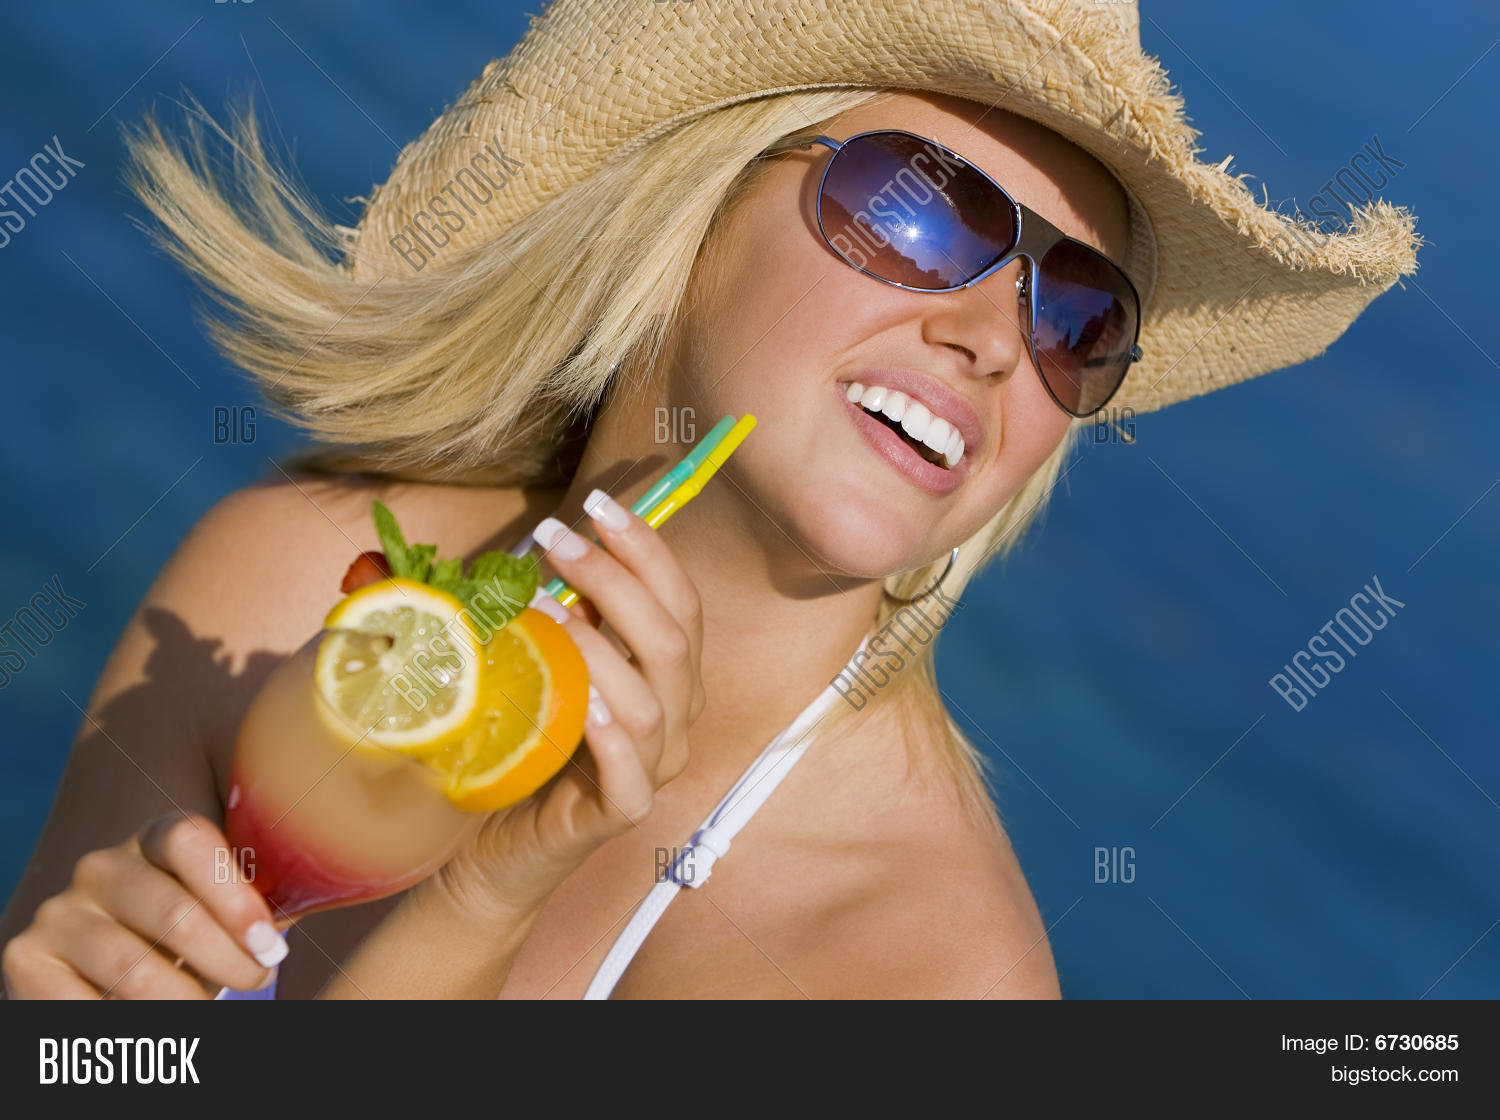 69afbaafa1425 Stunningly beautiful young blond woman in straw cowboy hat and sunglasses  enjoying a cocktail by a deep blue sea